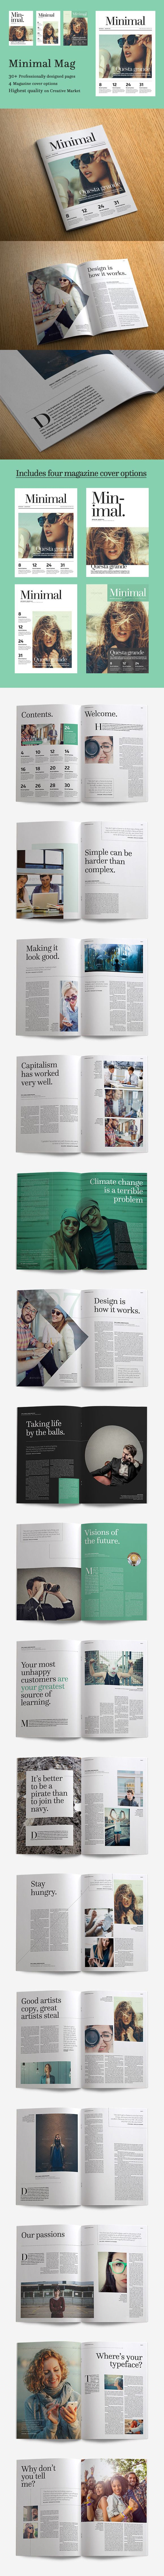 Minimal Magazine by CRS Design on Creative Market